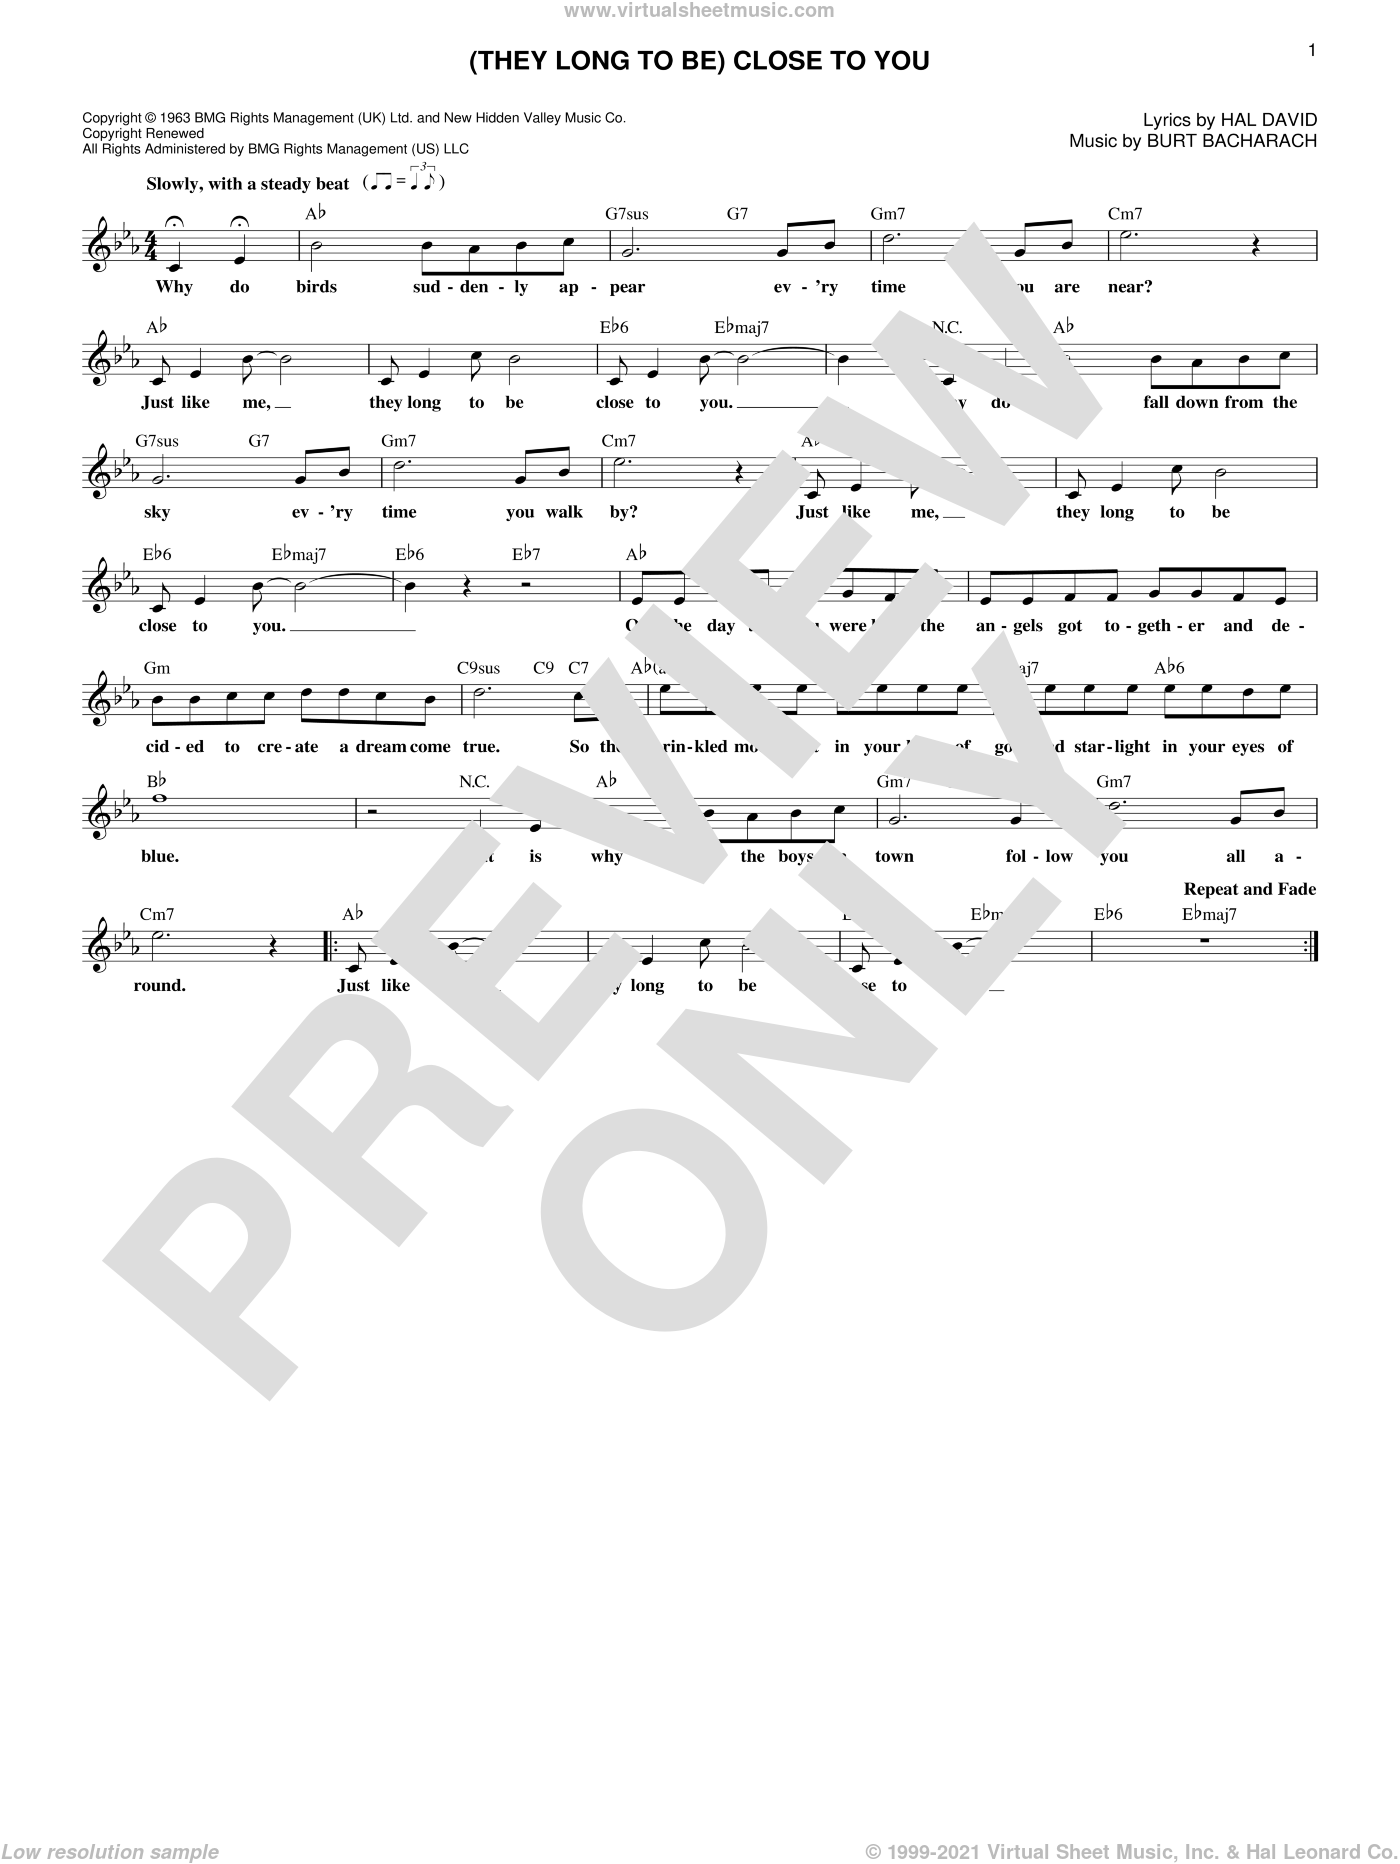 (They Long To Be) Close To You sheet music for voice and other instruments (fake book) by Burt Bacharach, Carpenters and Hal David, intermediate skill level